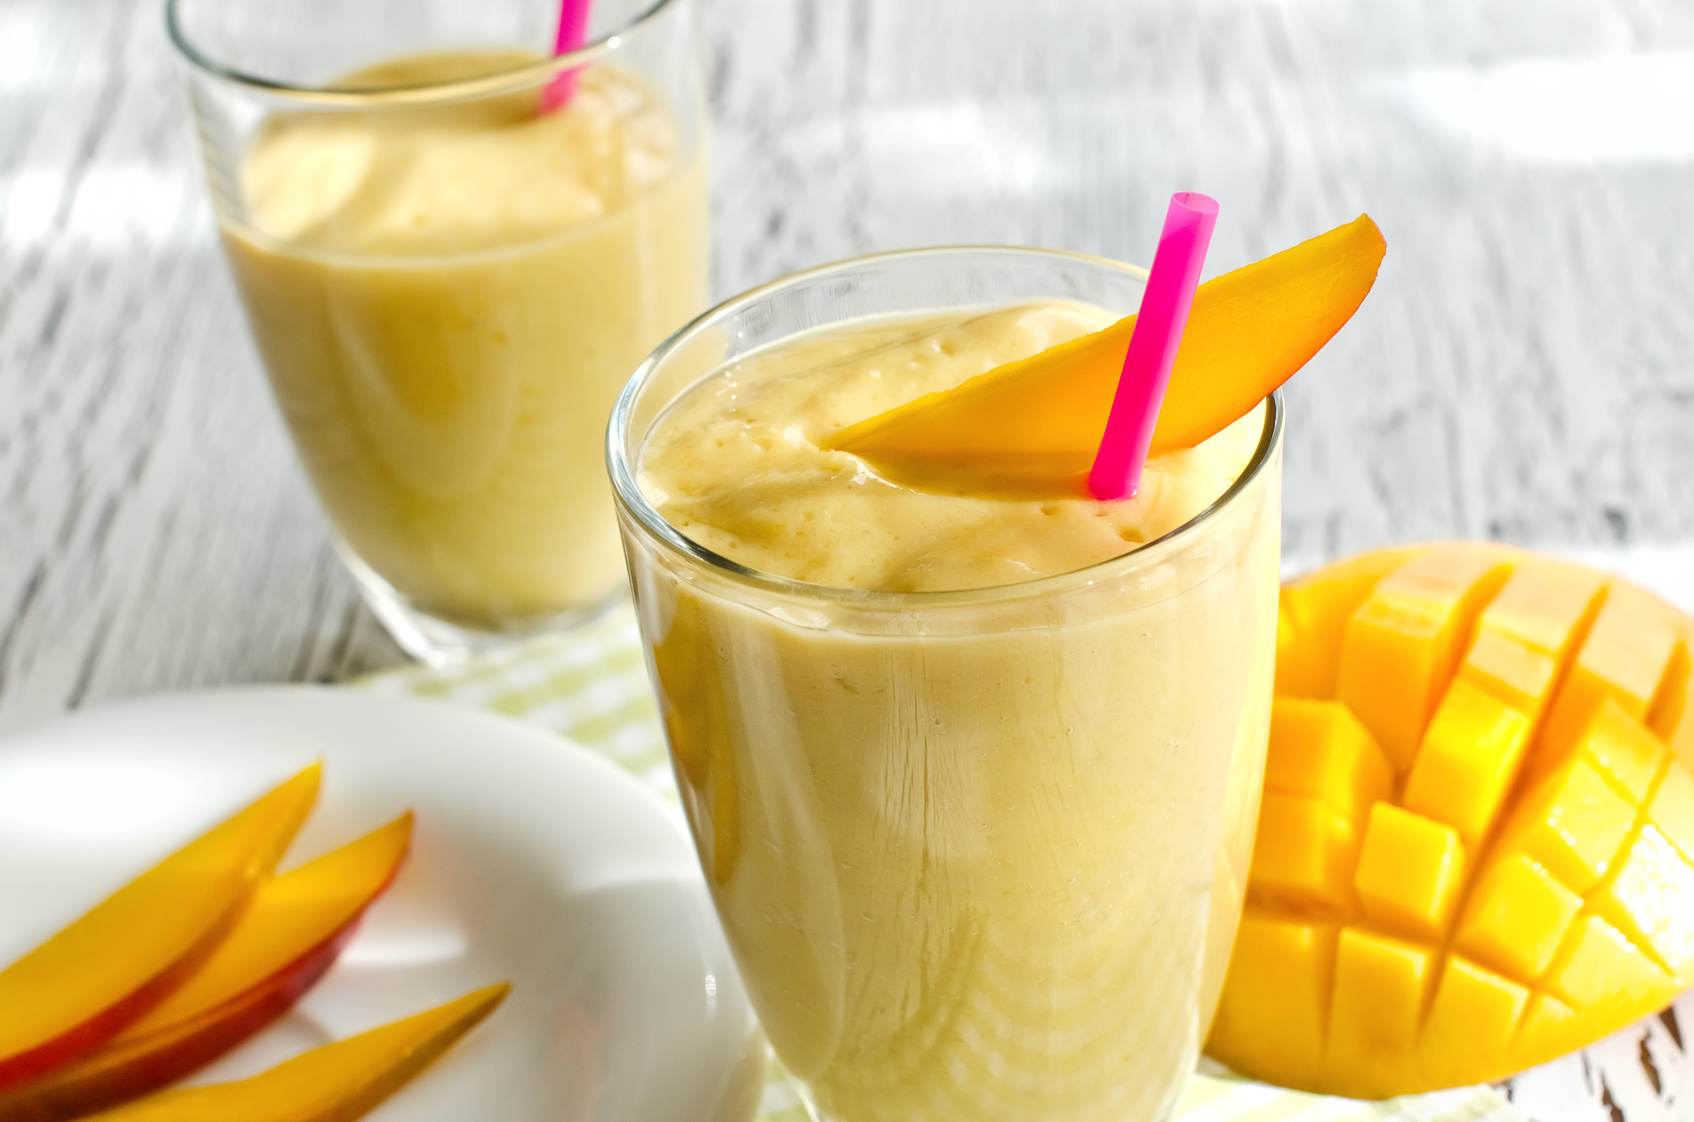 Carrot, Mango, and Herb Smoothie